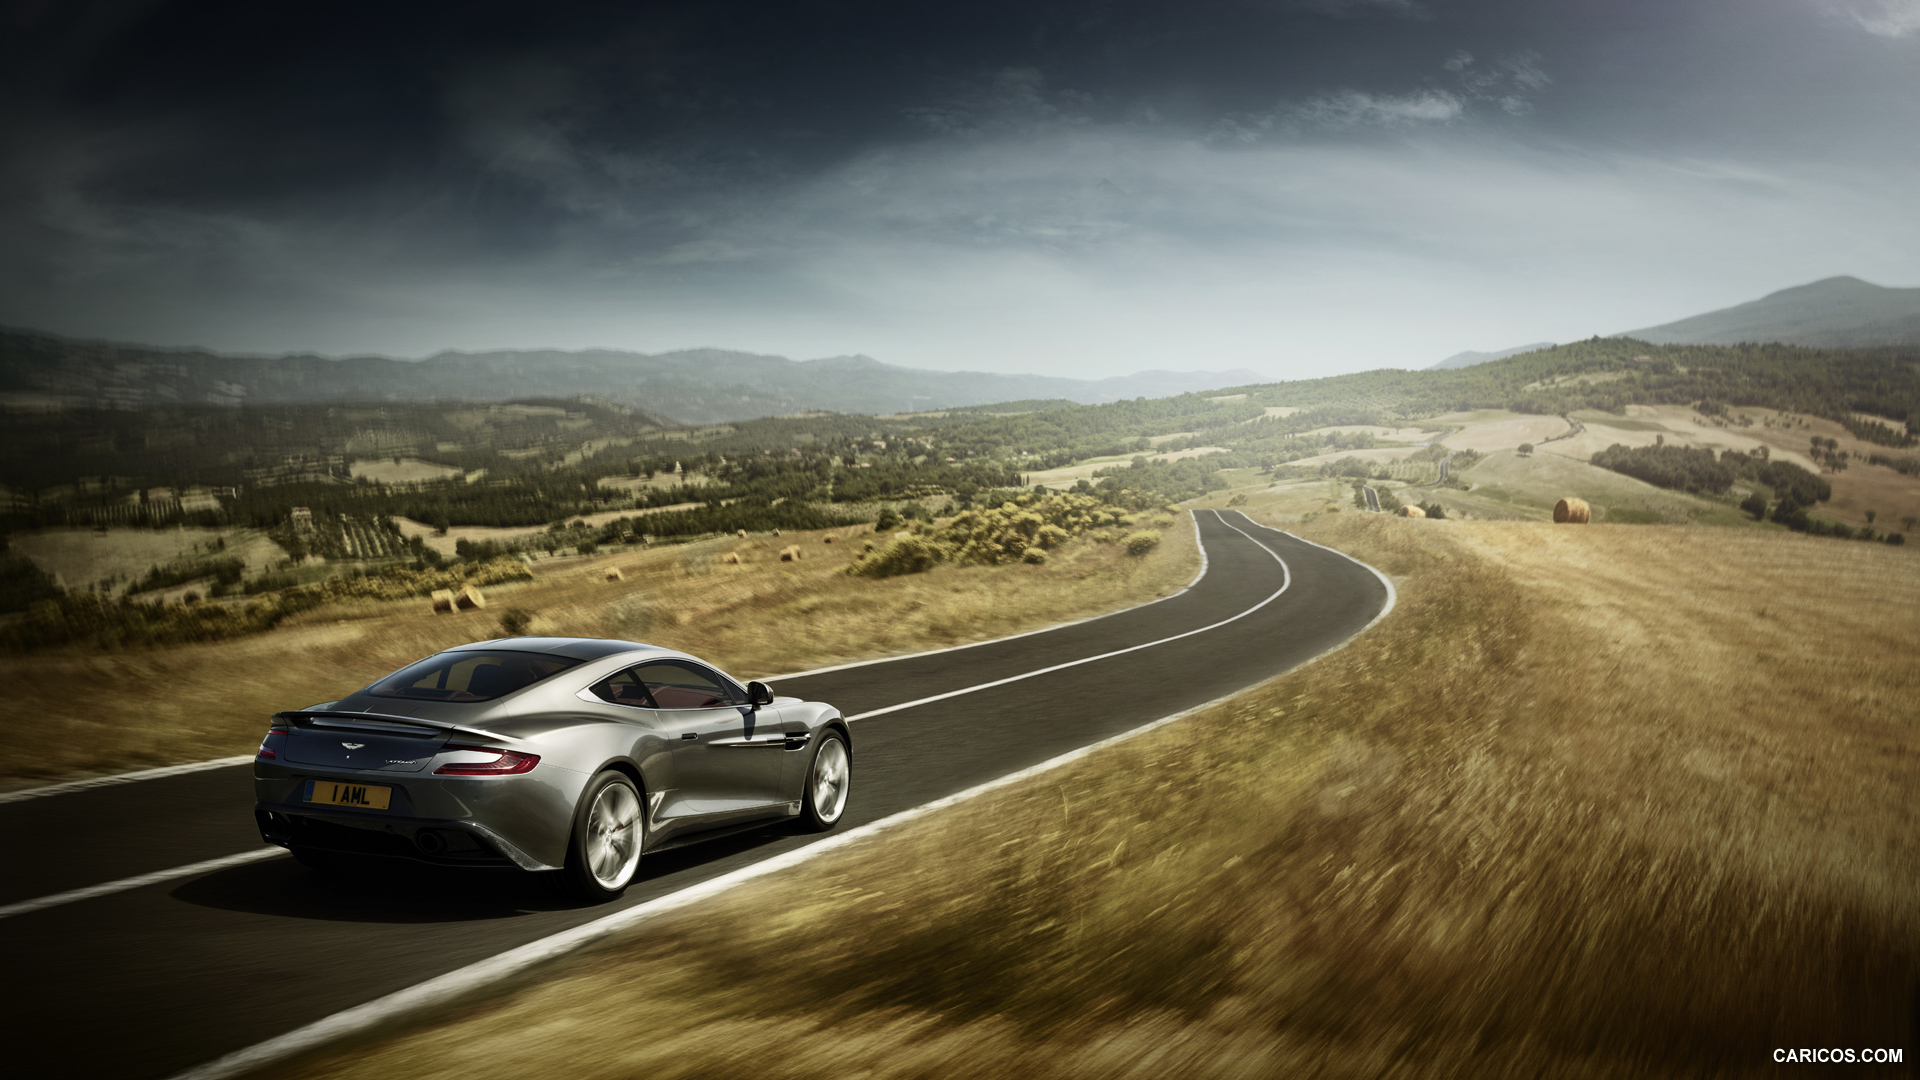 aston martin wallpapers page hd wallpapers 1920x1080